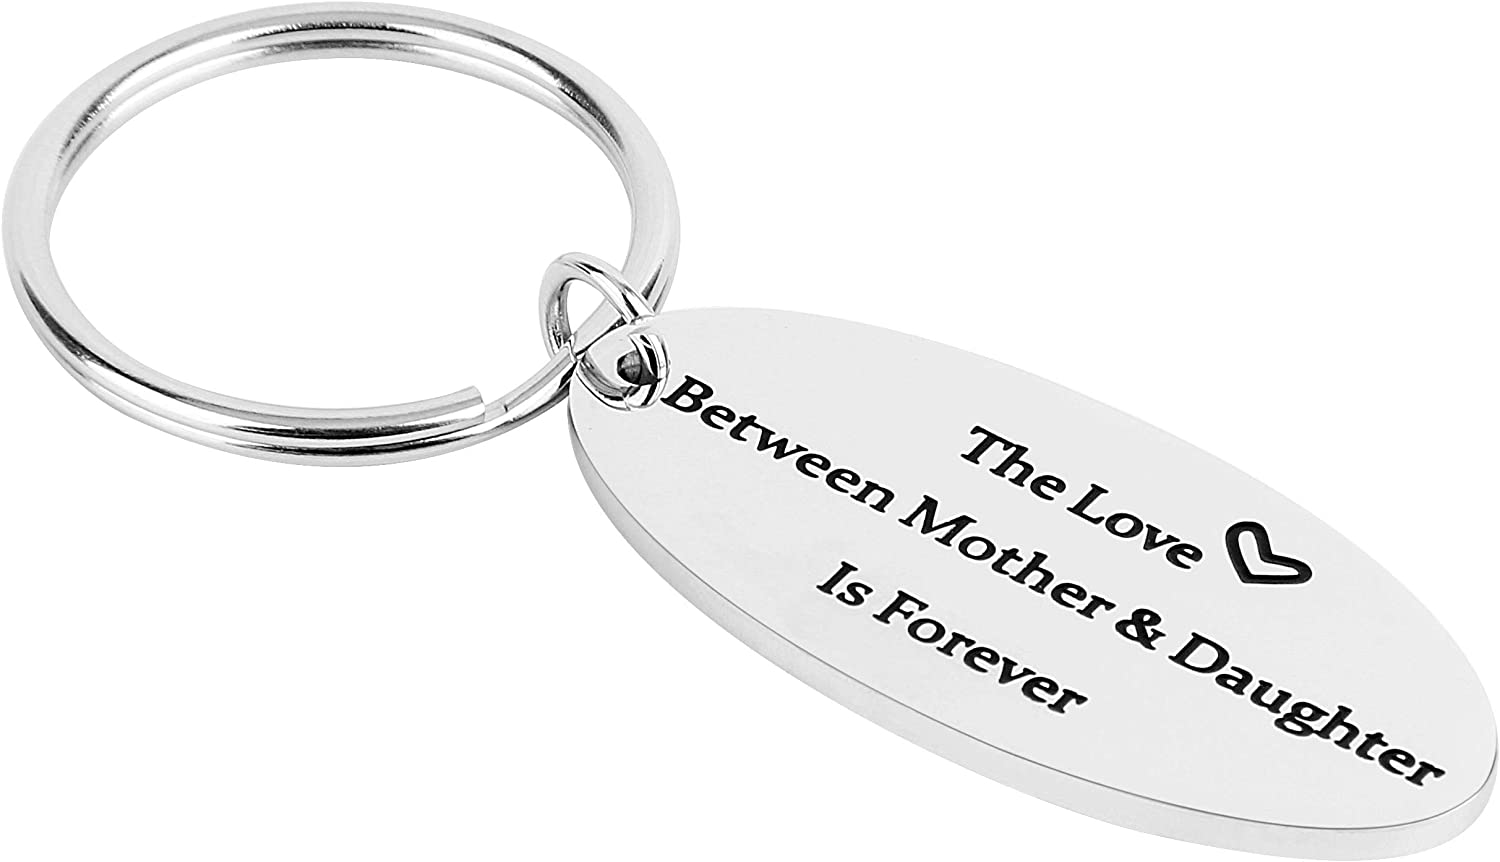 Stainless Steel Keychain Pendant, The Love Between Mother & Daughter Is Forever,for Christmas Mother's Day Birthday Gifts